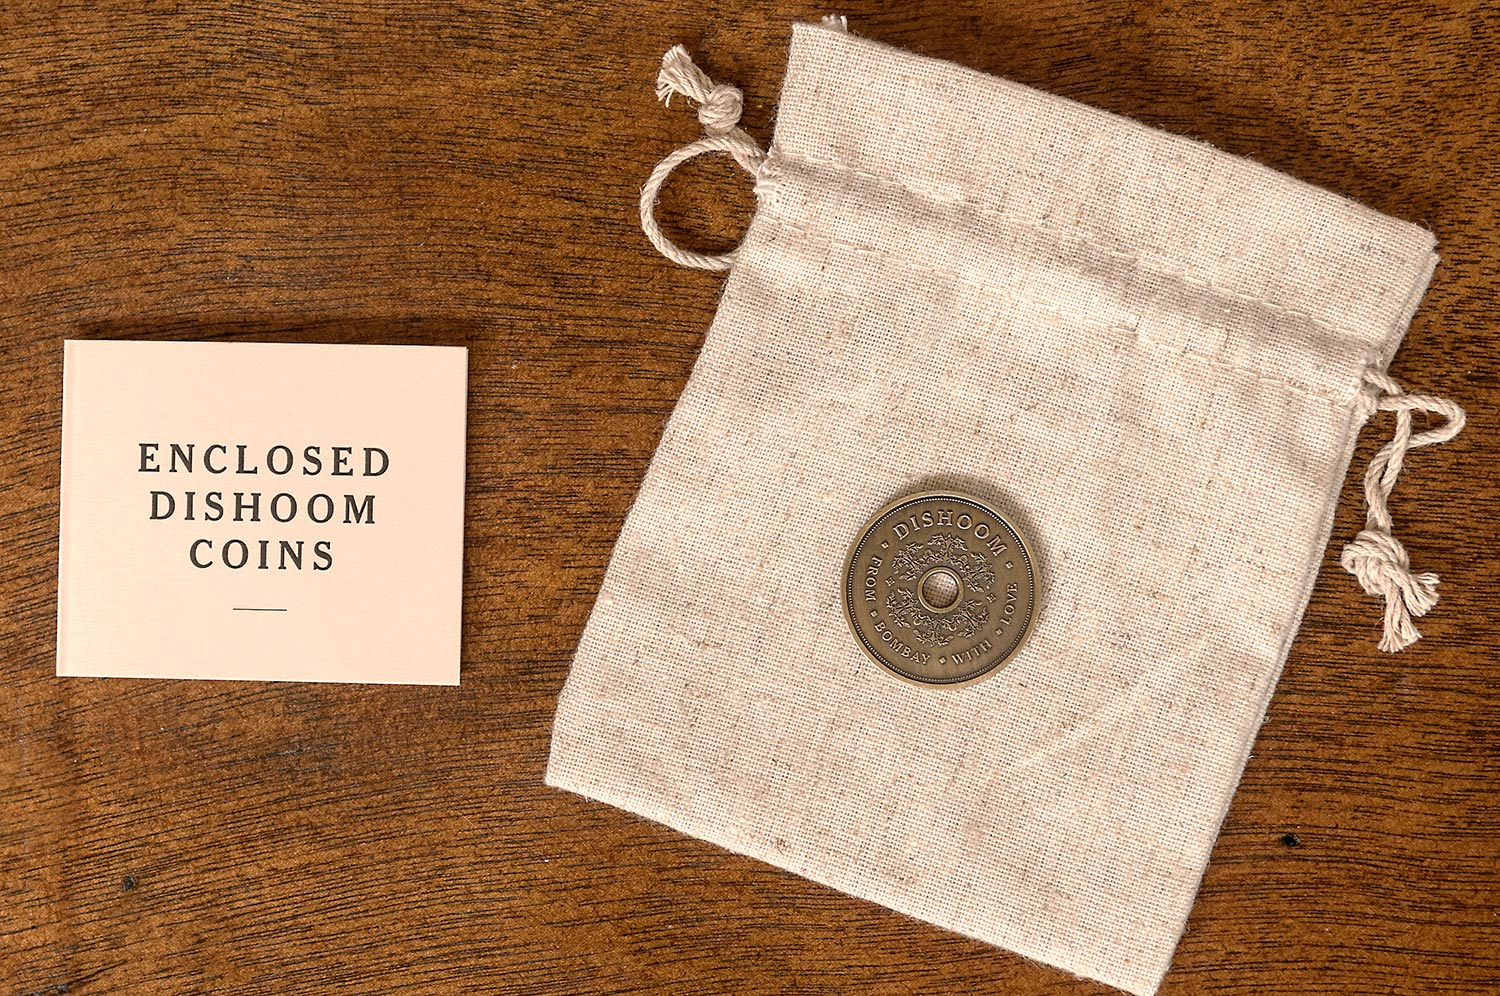 Coin design and marketing collateral for Dishoom by Saint Design